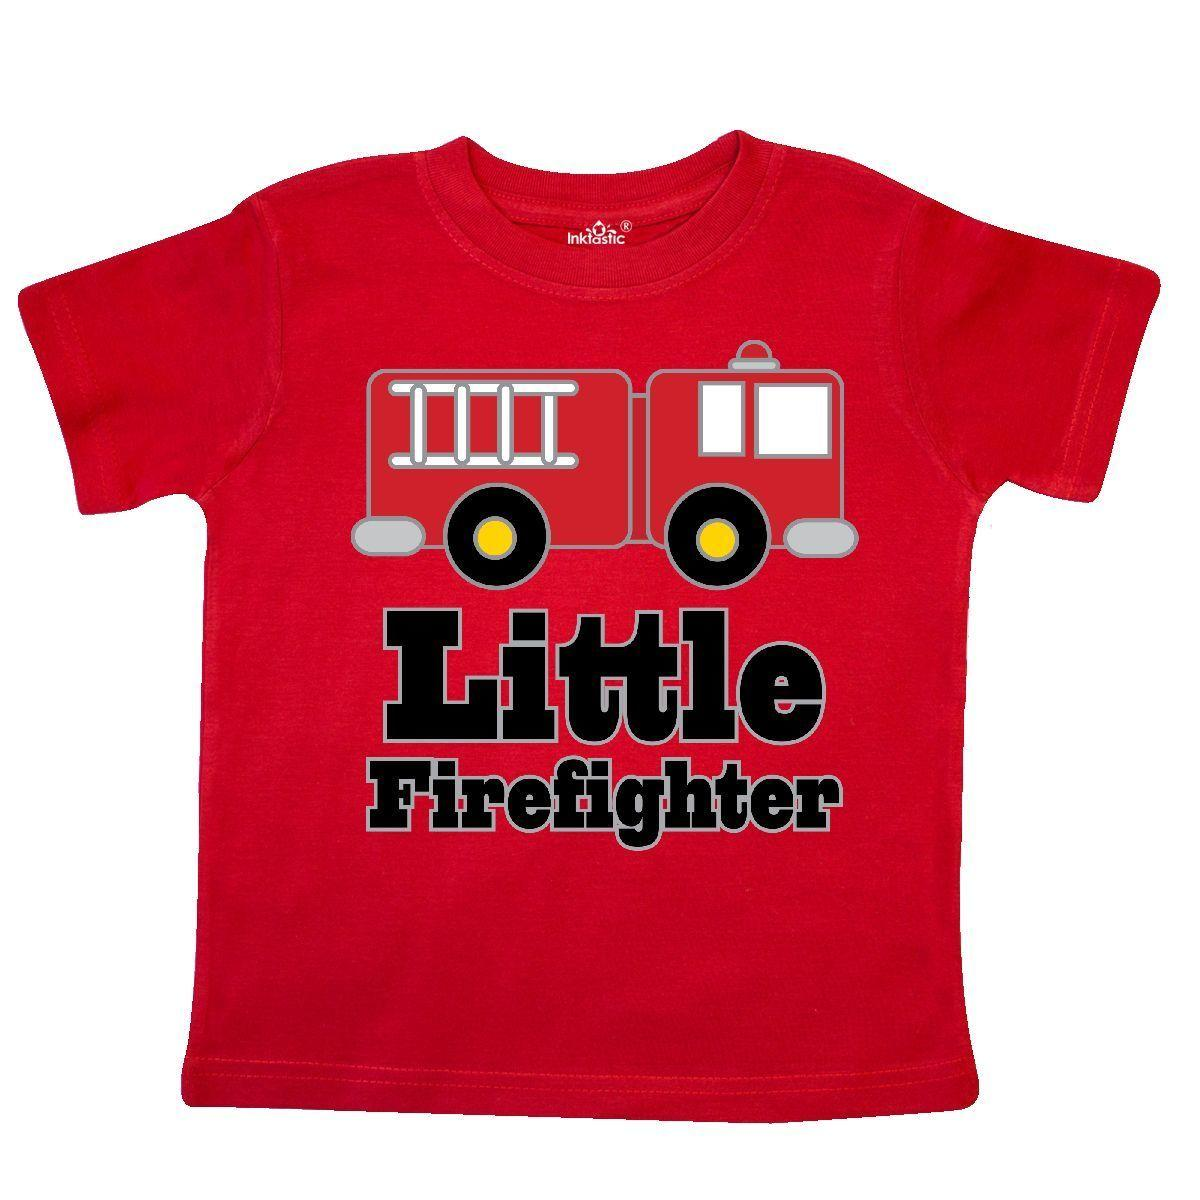 dc2dcfbd2 Inktastic Little Firefighter Fire Engine Toddler T Shirt Firetruck Fireman  Kids Funny Unisex Casual Tee Gift Shirts T Funky T Shirts For Women From ...